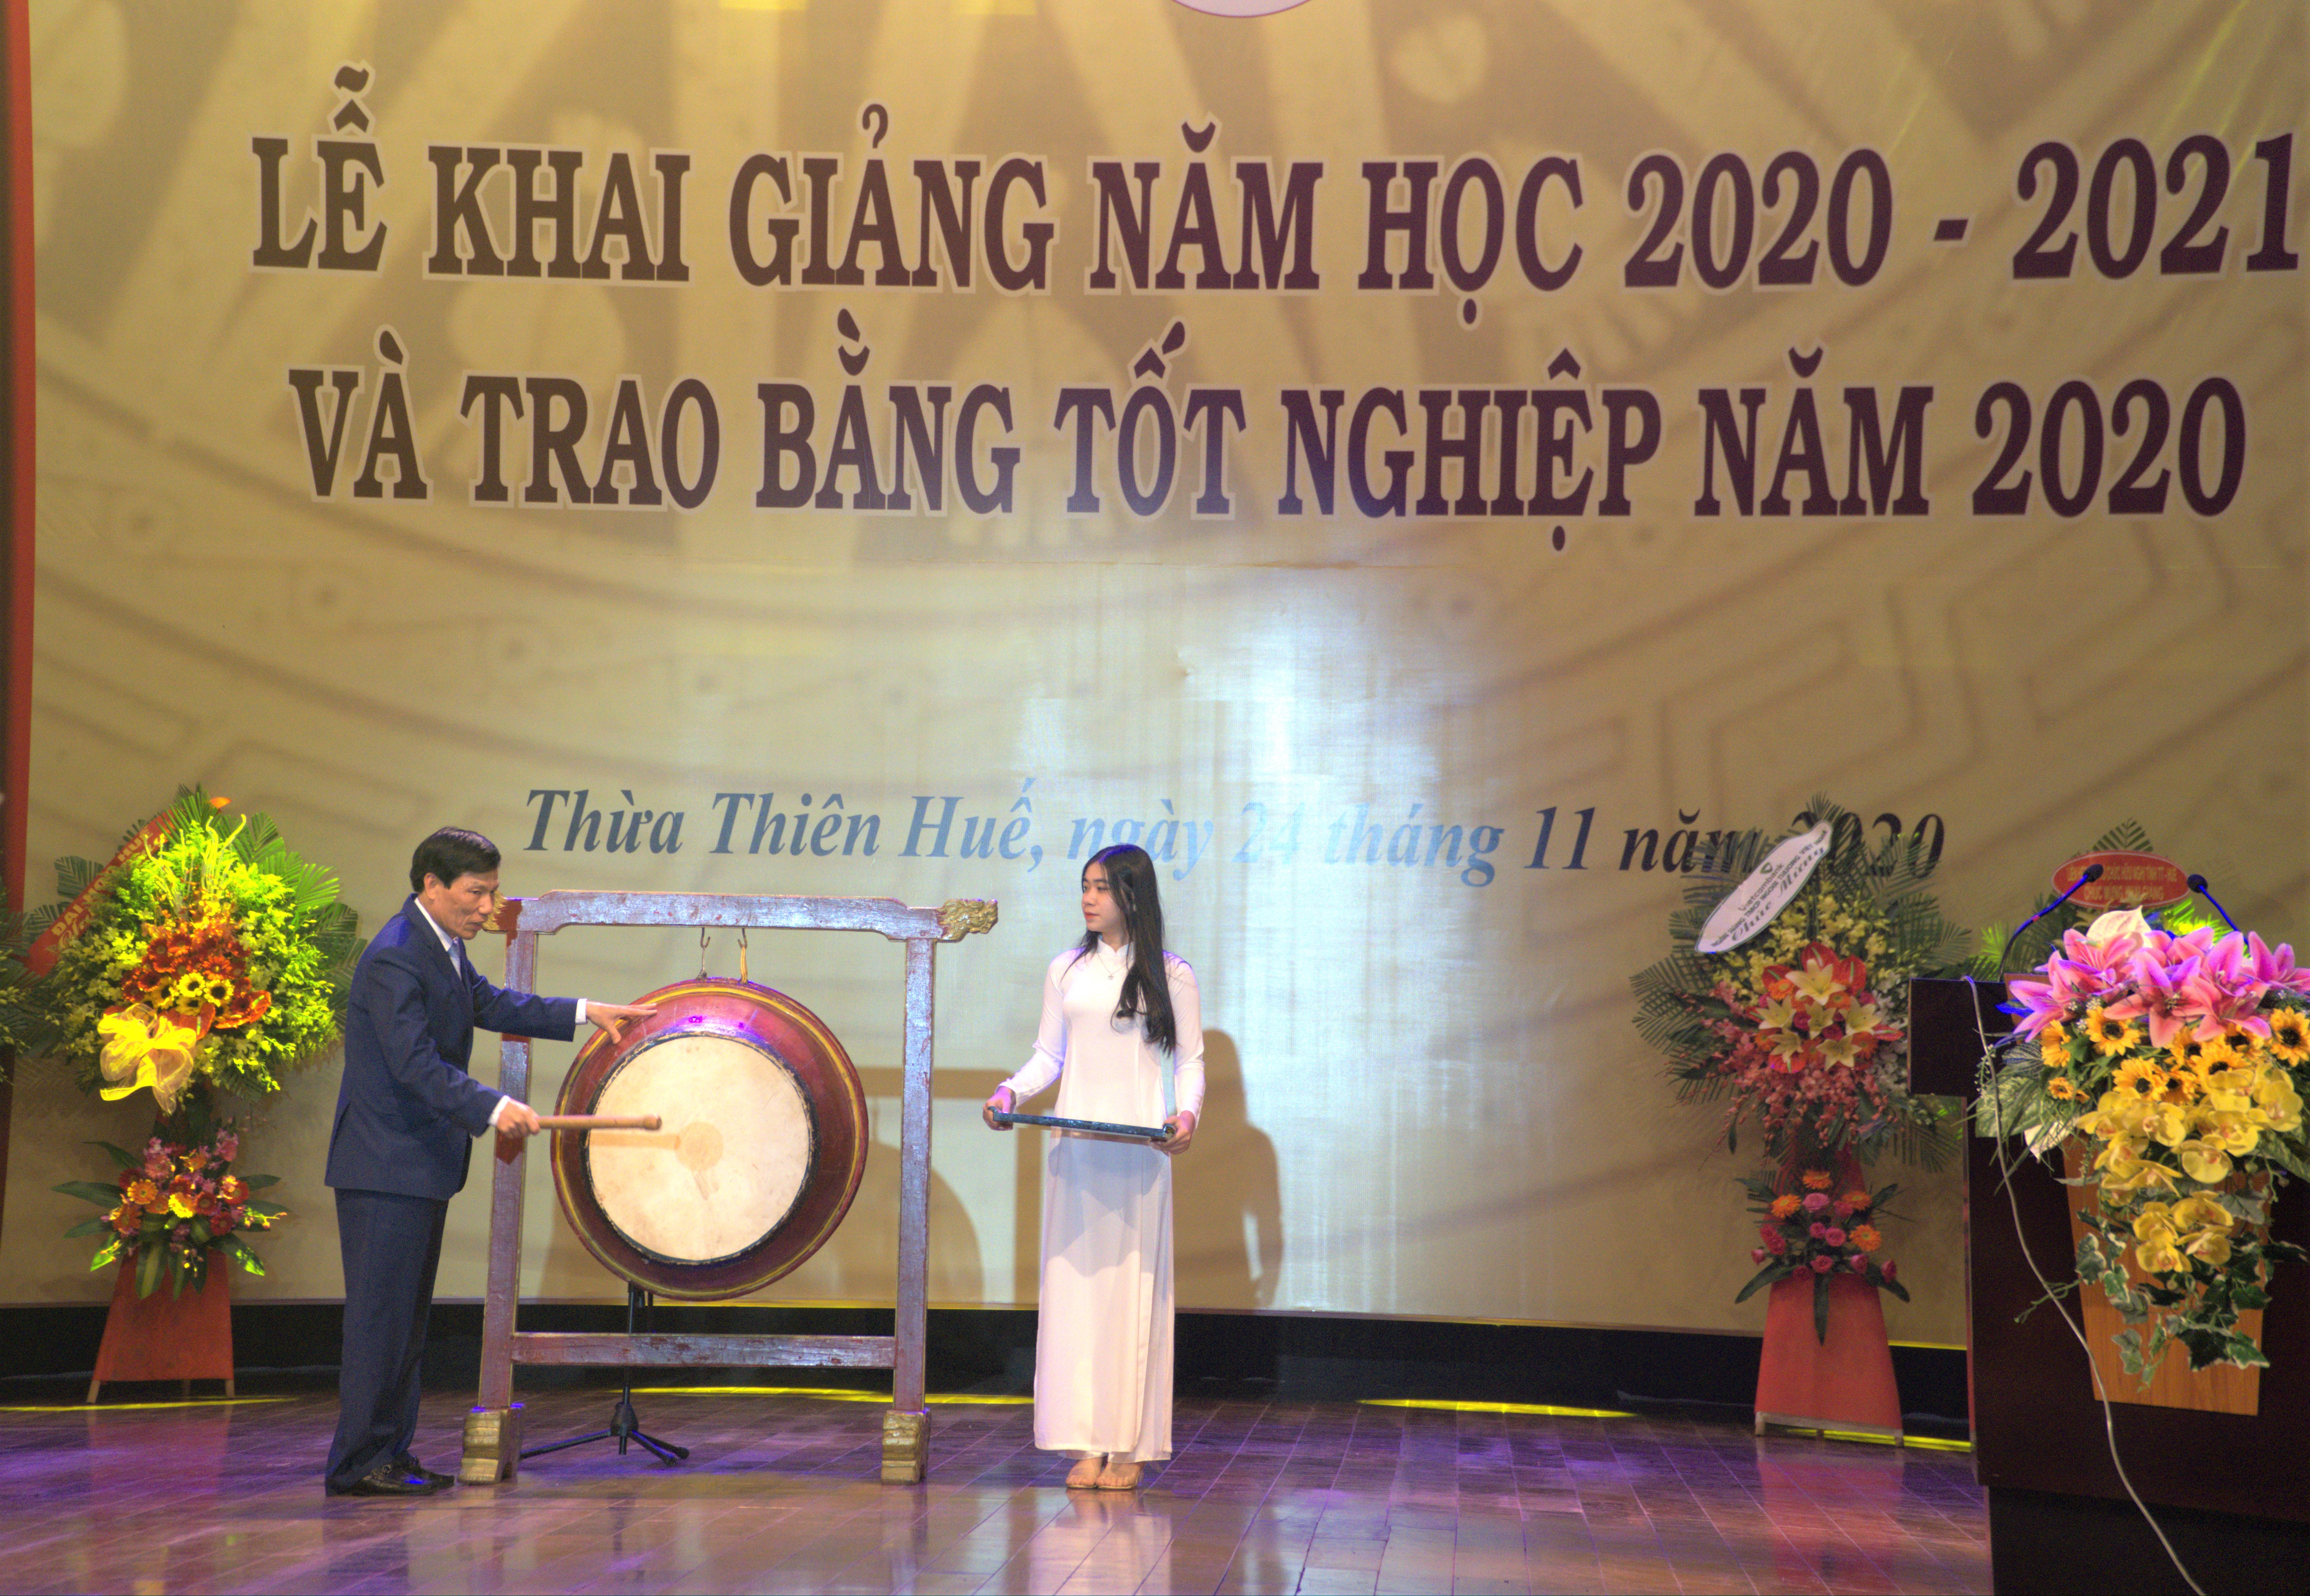 Minister of Culture, Sports and Tourism Nguyen Ngoc Thien visited and worked at the Hue Academy of Music